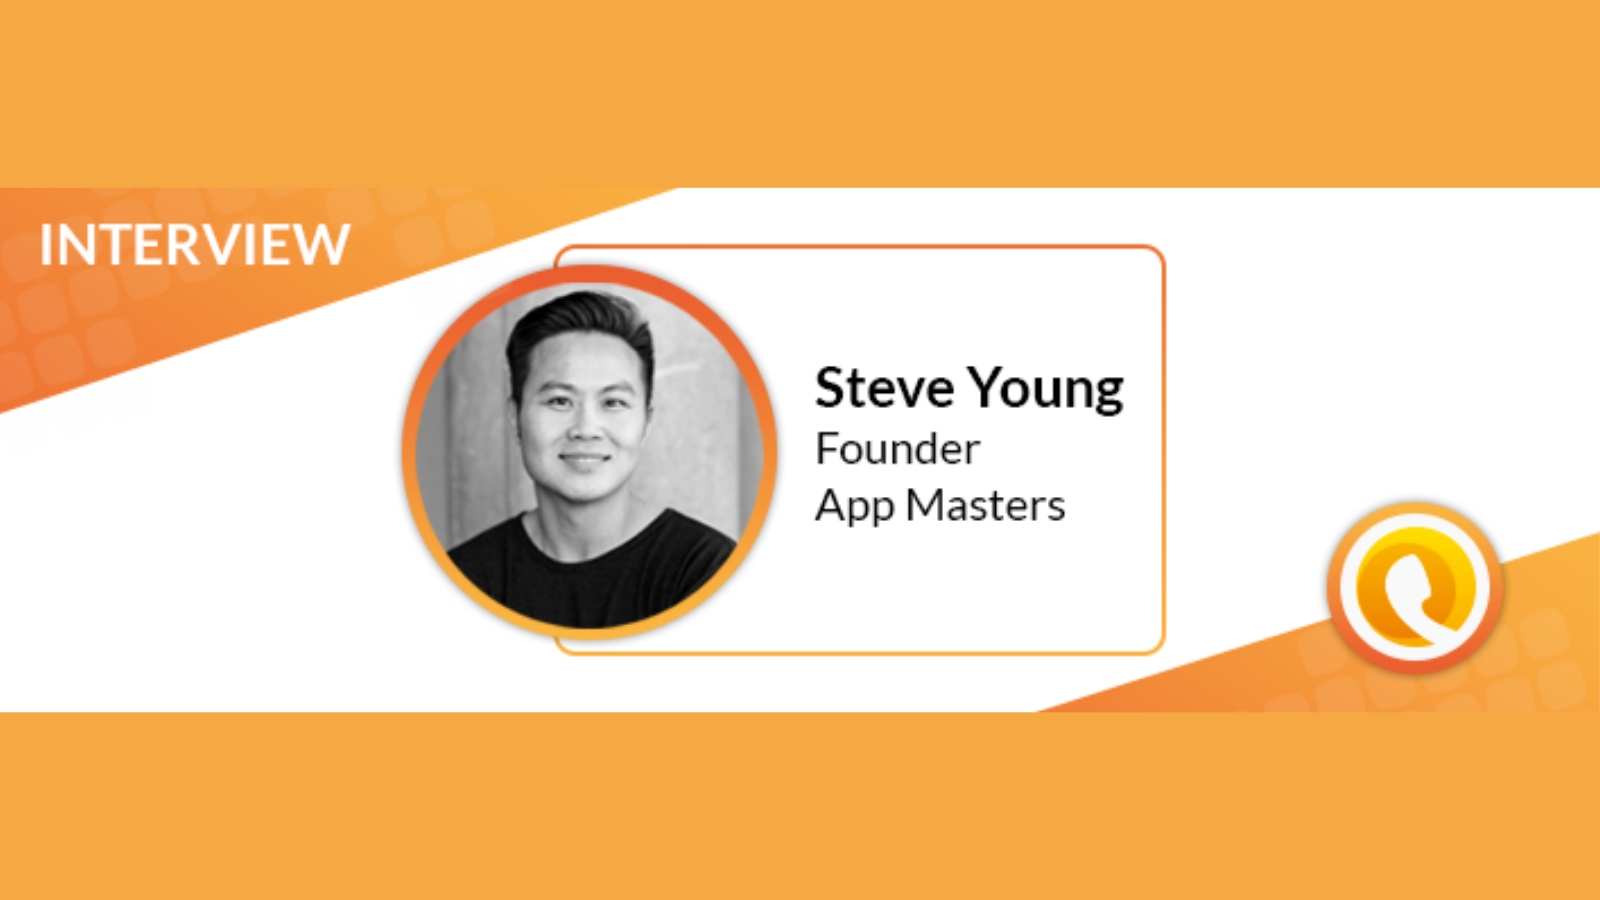 Super-charge Your App Marketing With App Masters' Pick Of ASO Tools, Trends And Growth Hacks